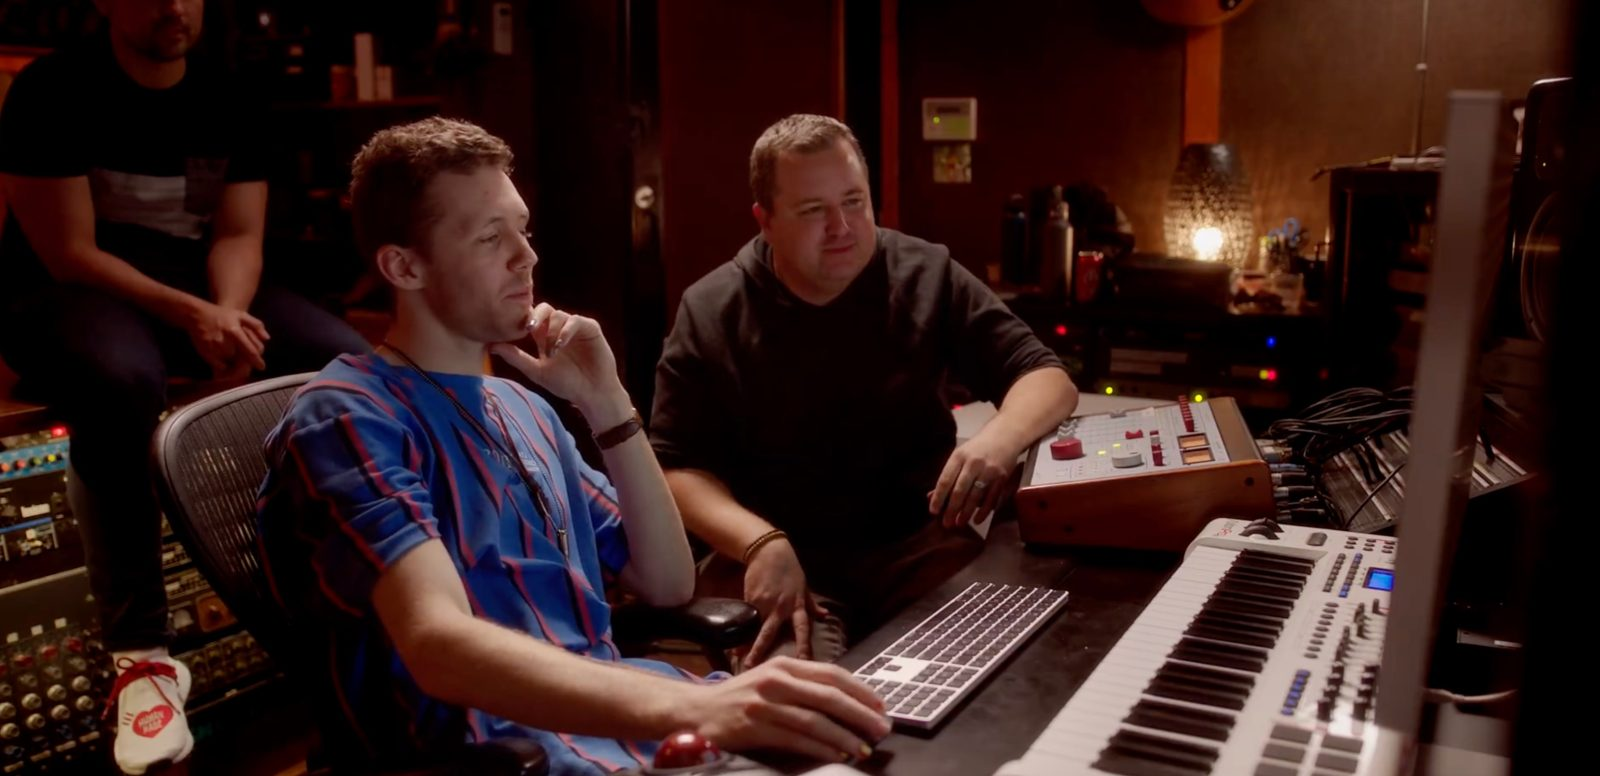 Renowned music producers put the Mac Pro to the test with Logic Pro X session